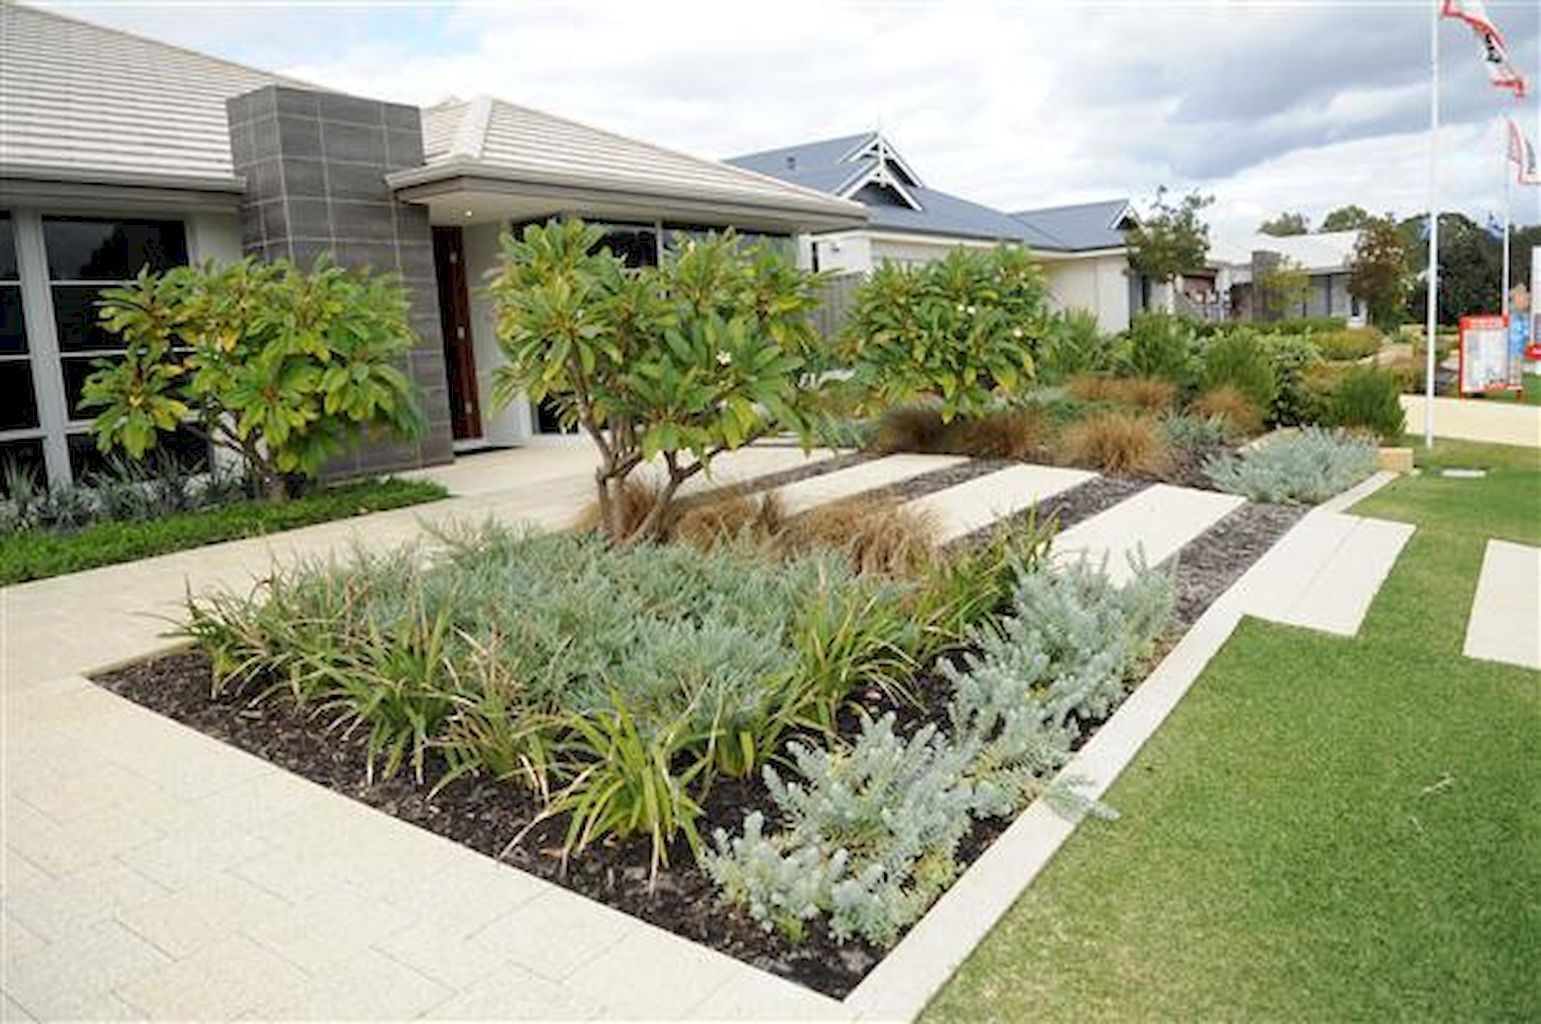 Simple clean modern front yard landscaping ideas (22